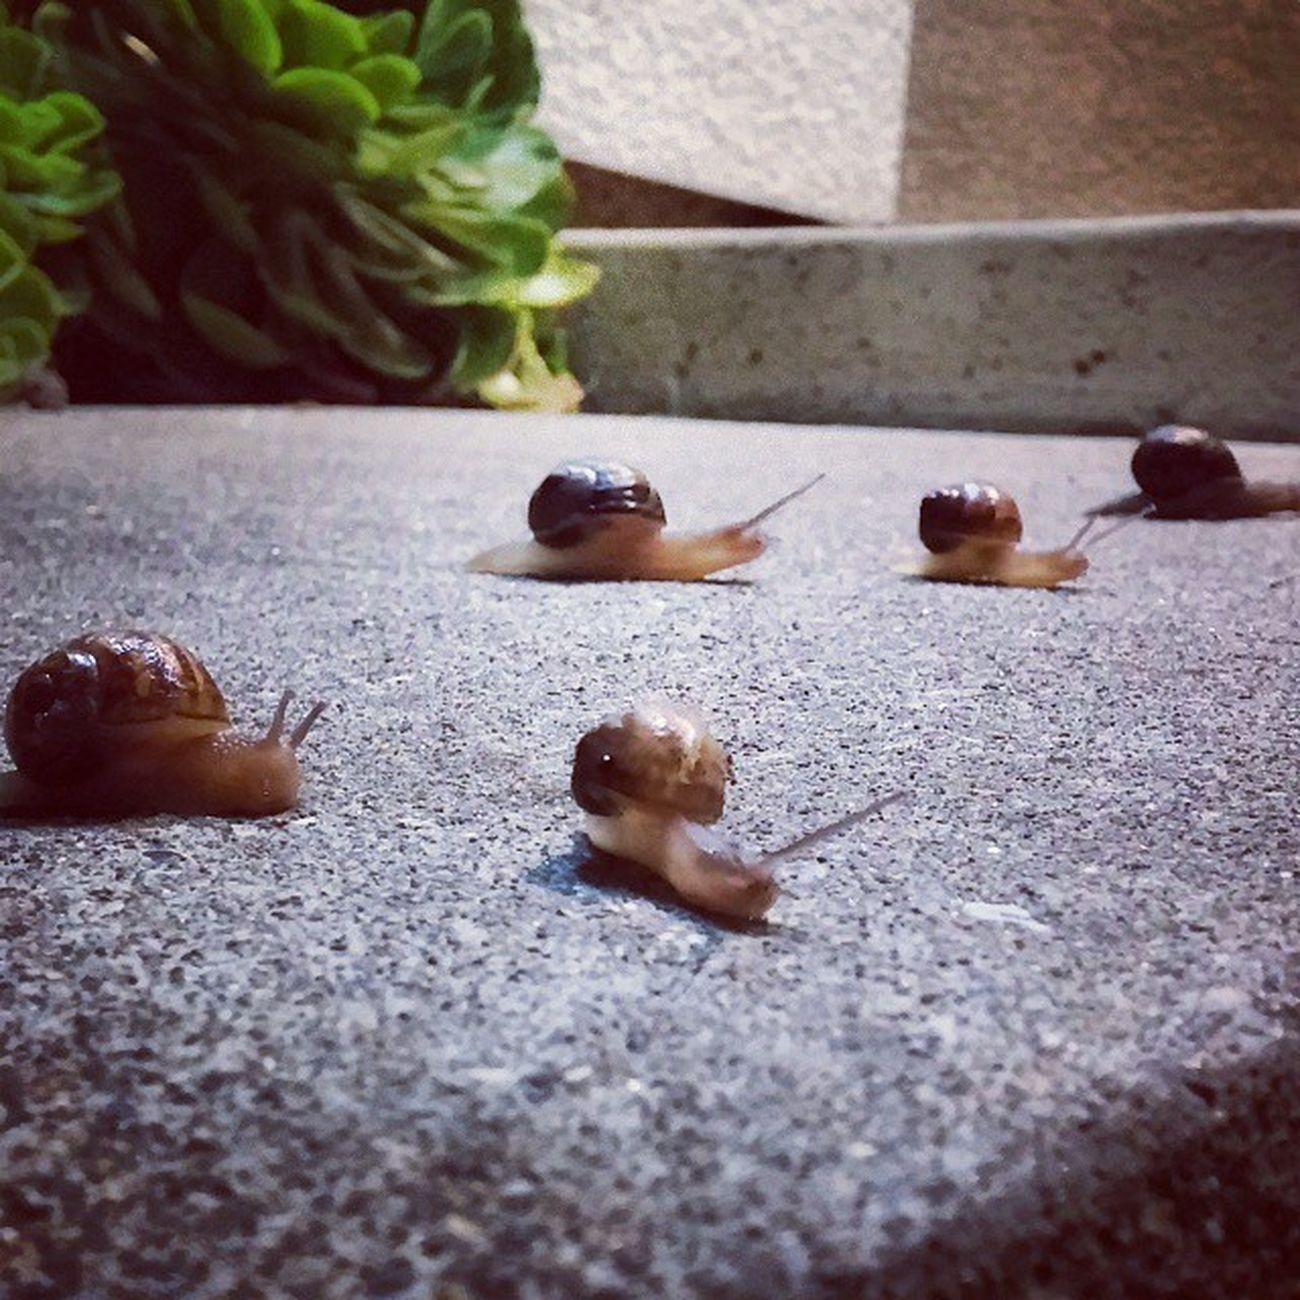 🎶The snails come out at night🎶 Snail Snailparade Snailtrail . Familynight Family Up Close Street Photography